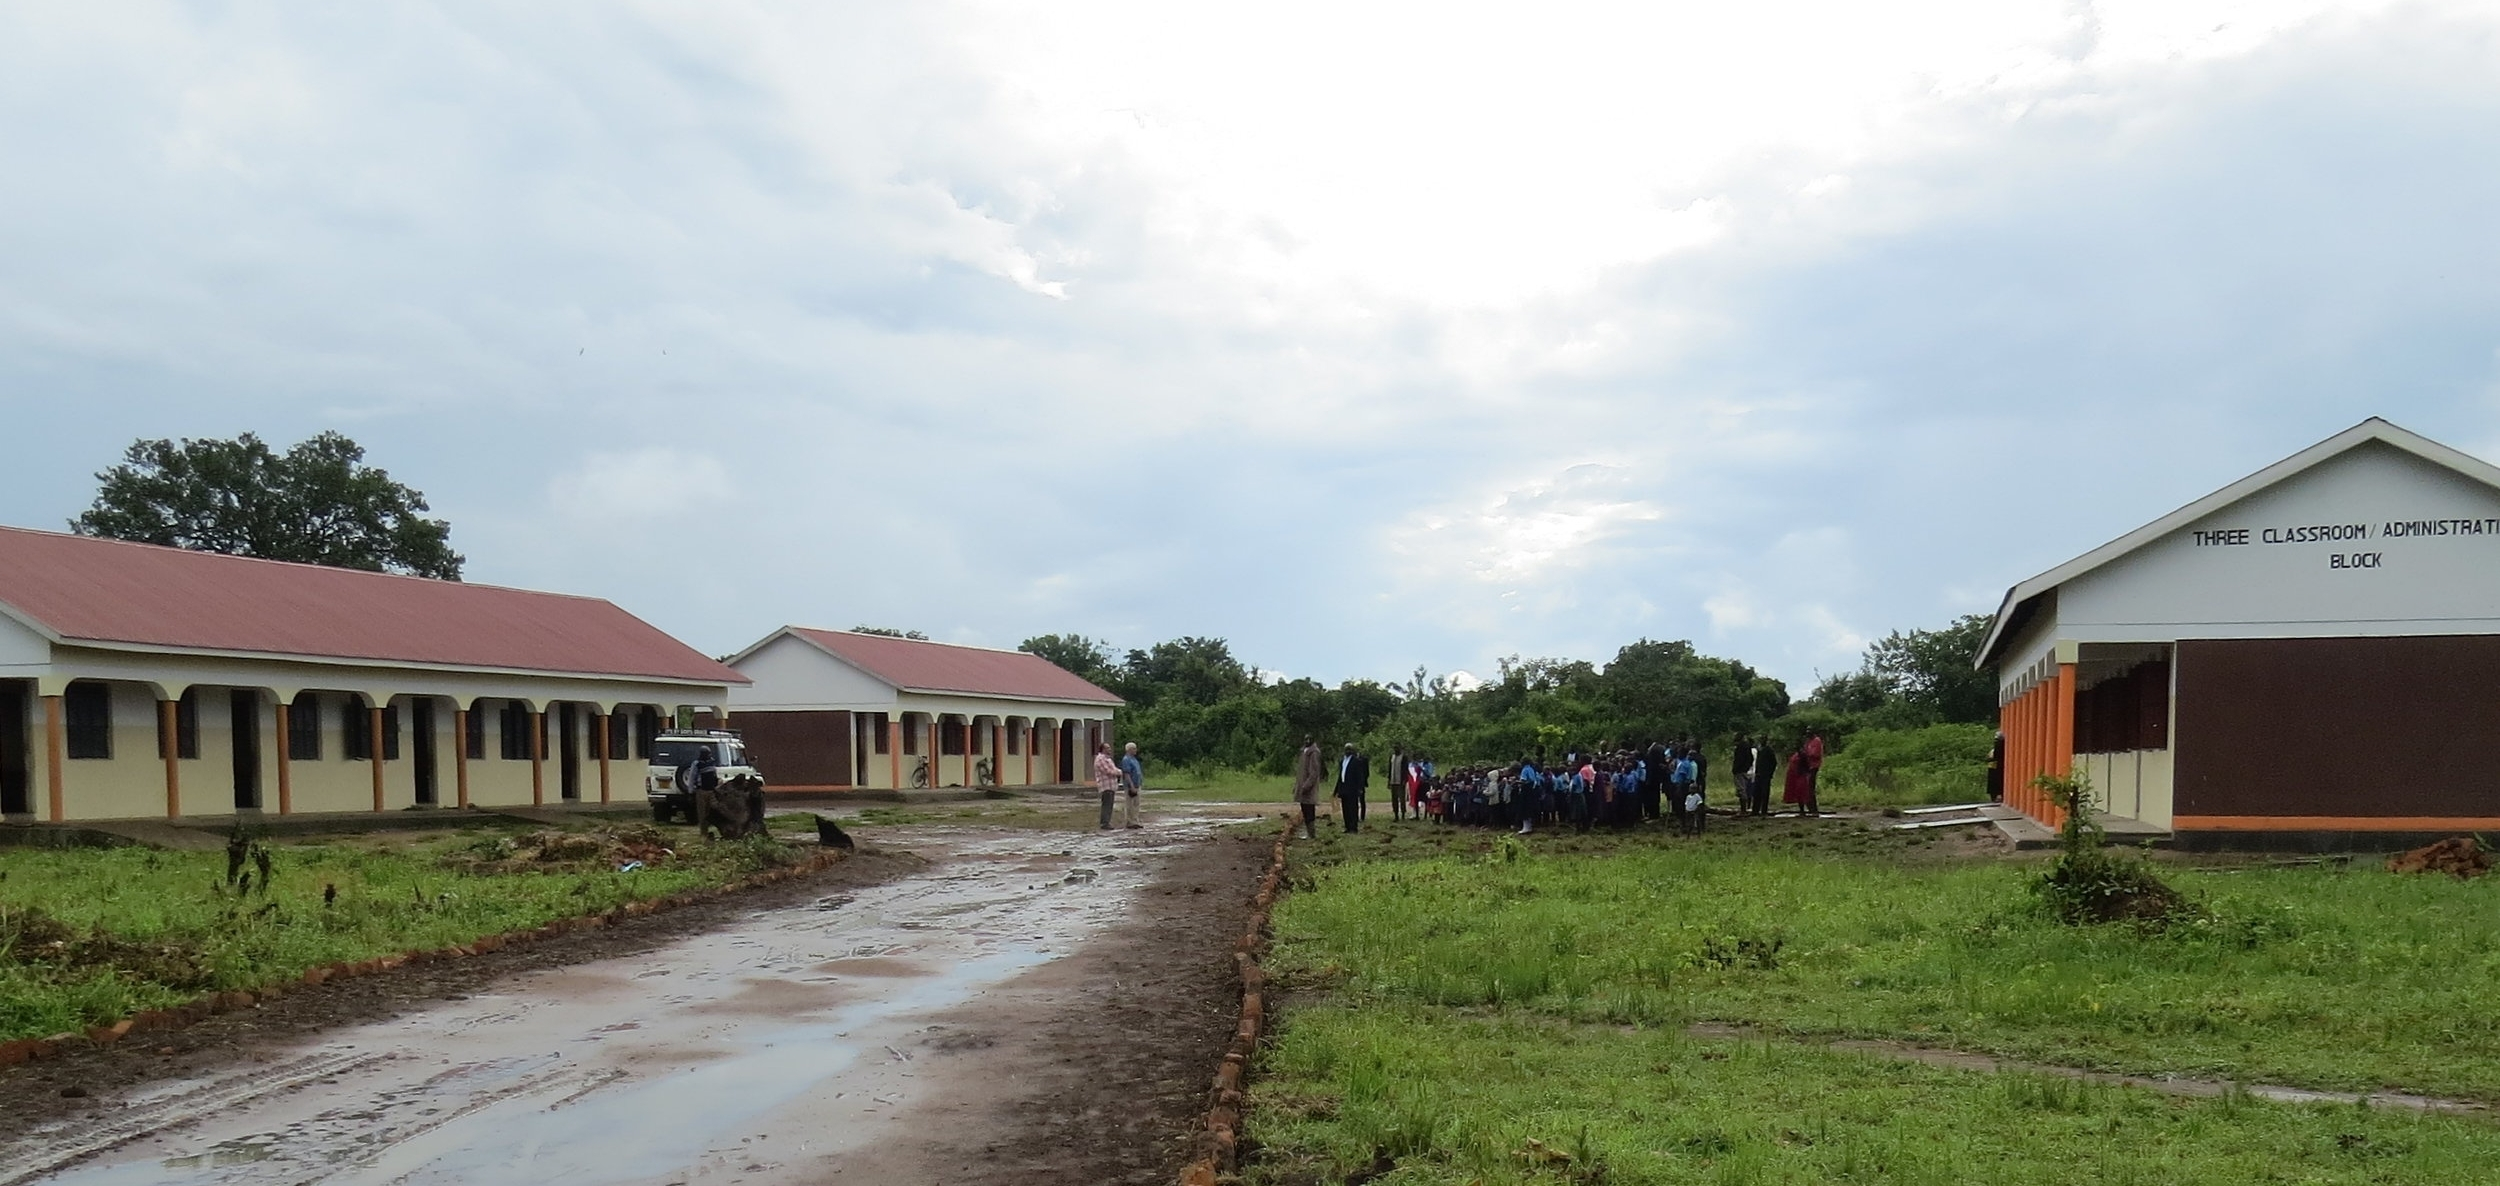 OKWETA PRIMARY SCHOOL - JUNE 2018